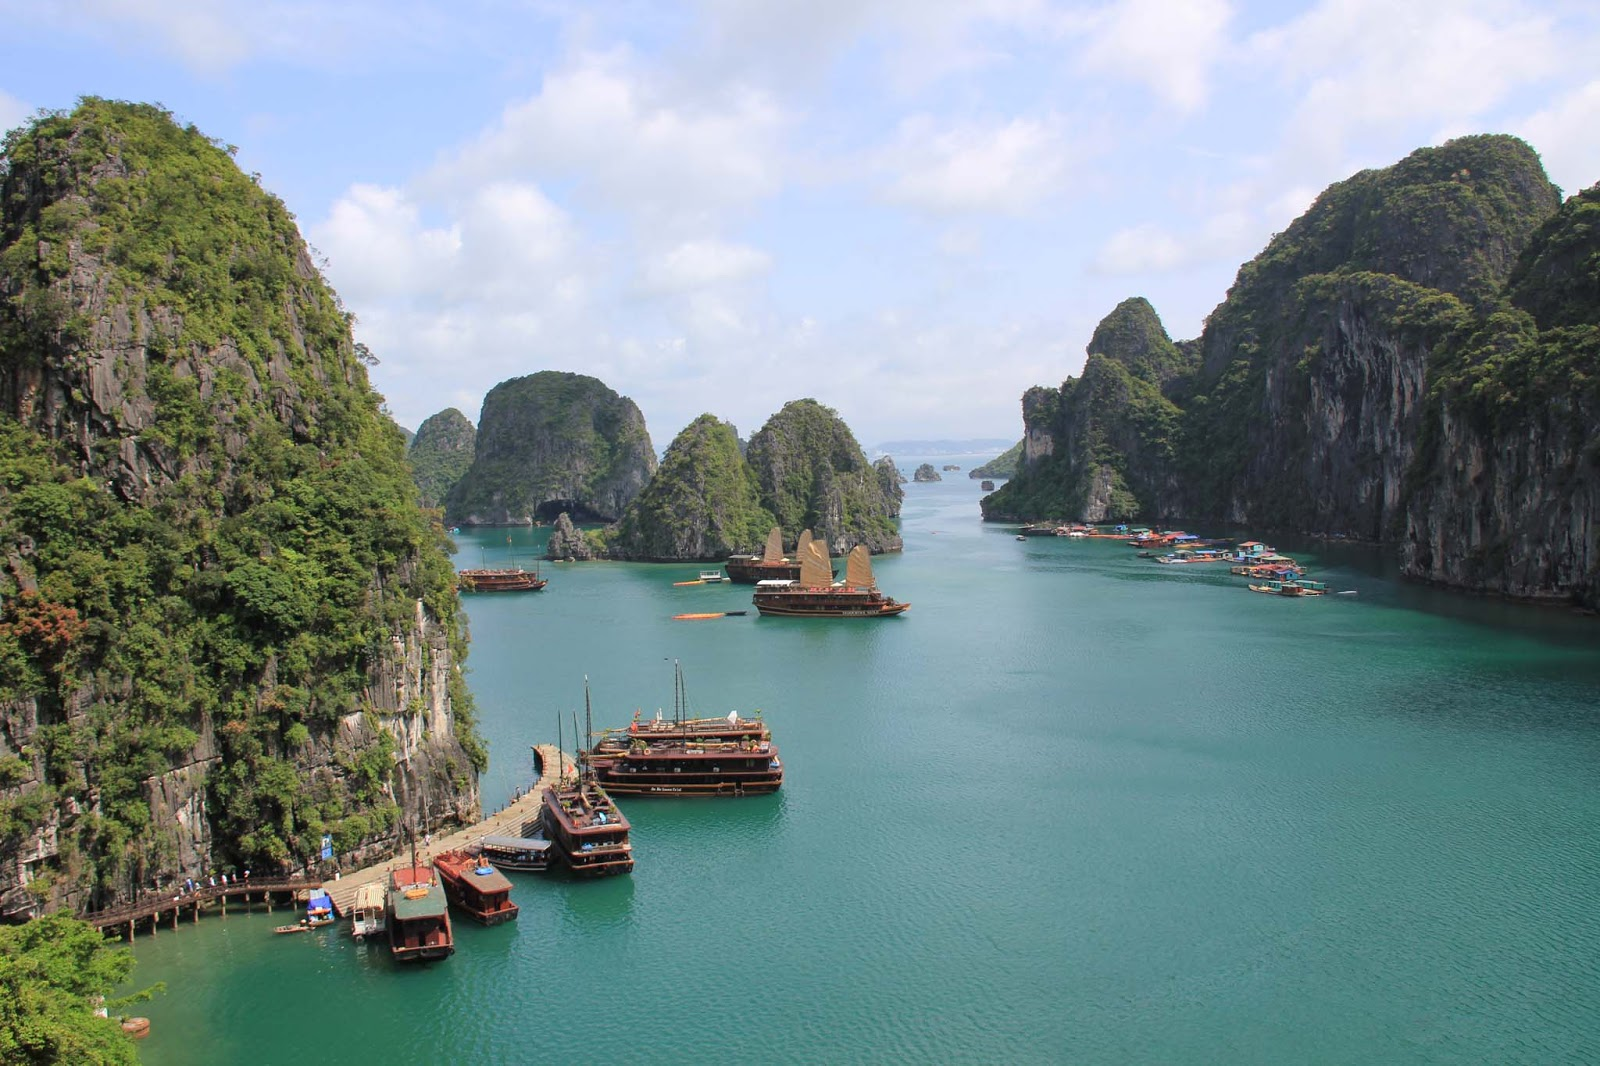 Halong Vietnam  City new picture : Halong Bay, Vietnam | Settings | Pinterest